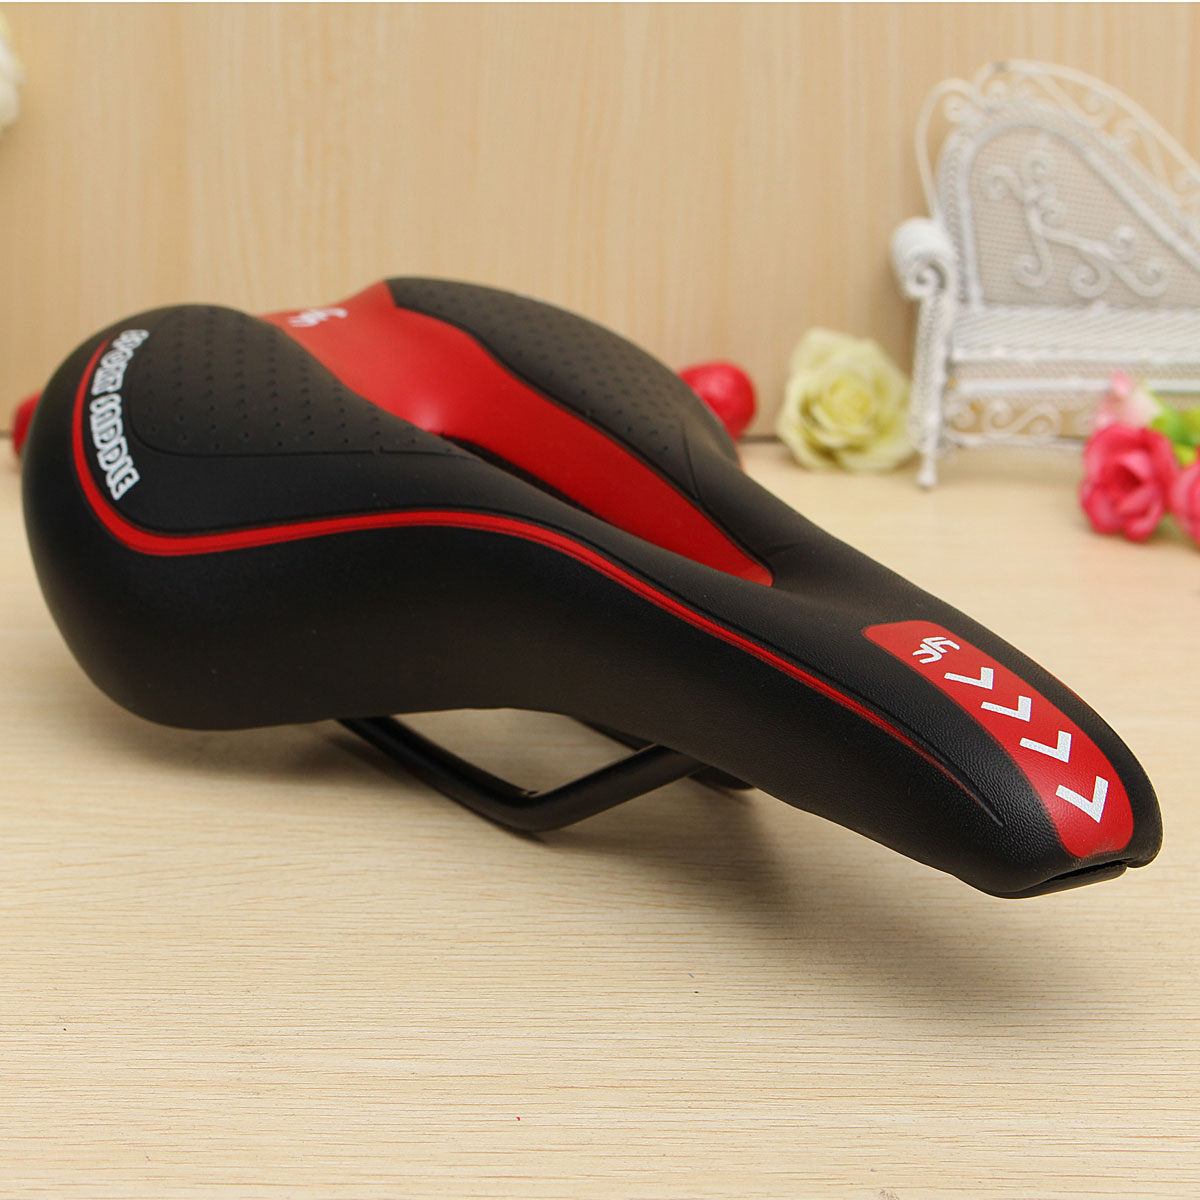 MTB Cycling Bike Saddle Soft Cushion Bicycle Seat Cover Riding Cover Comfort Gel